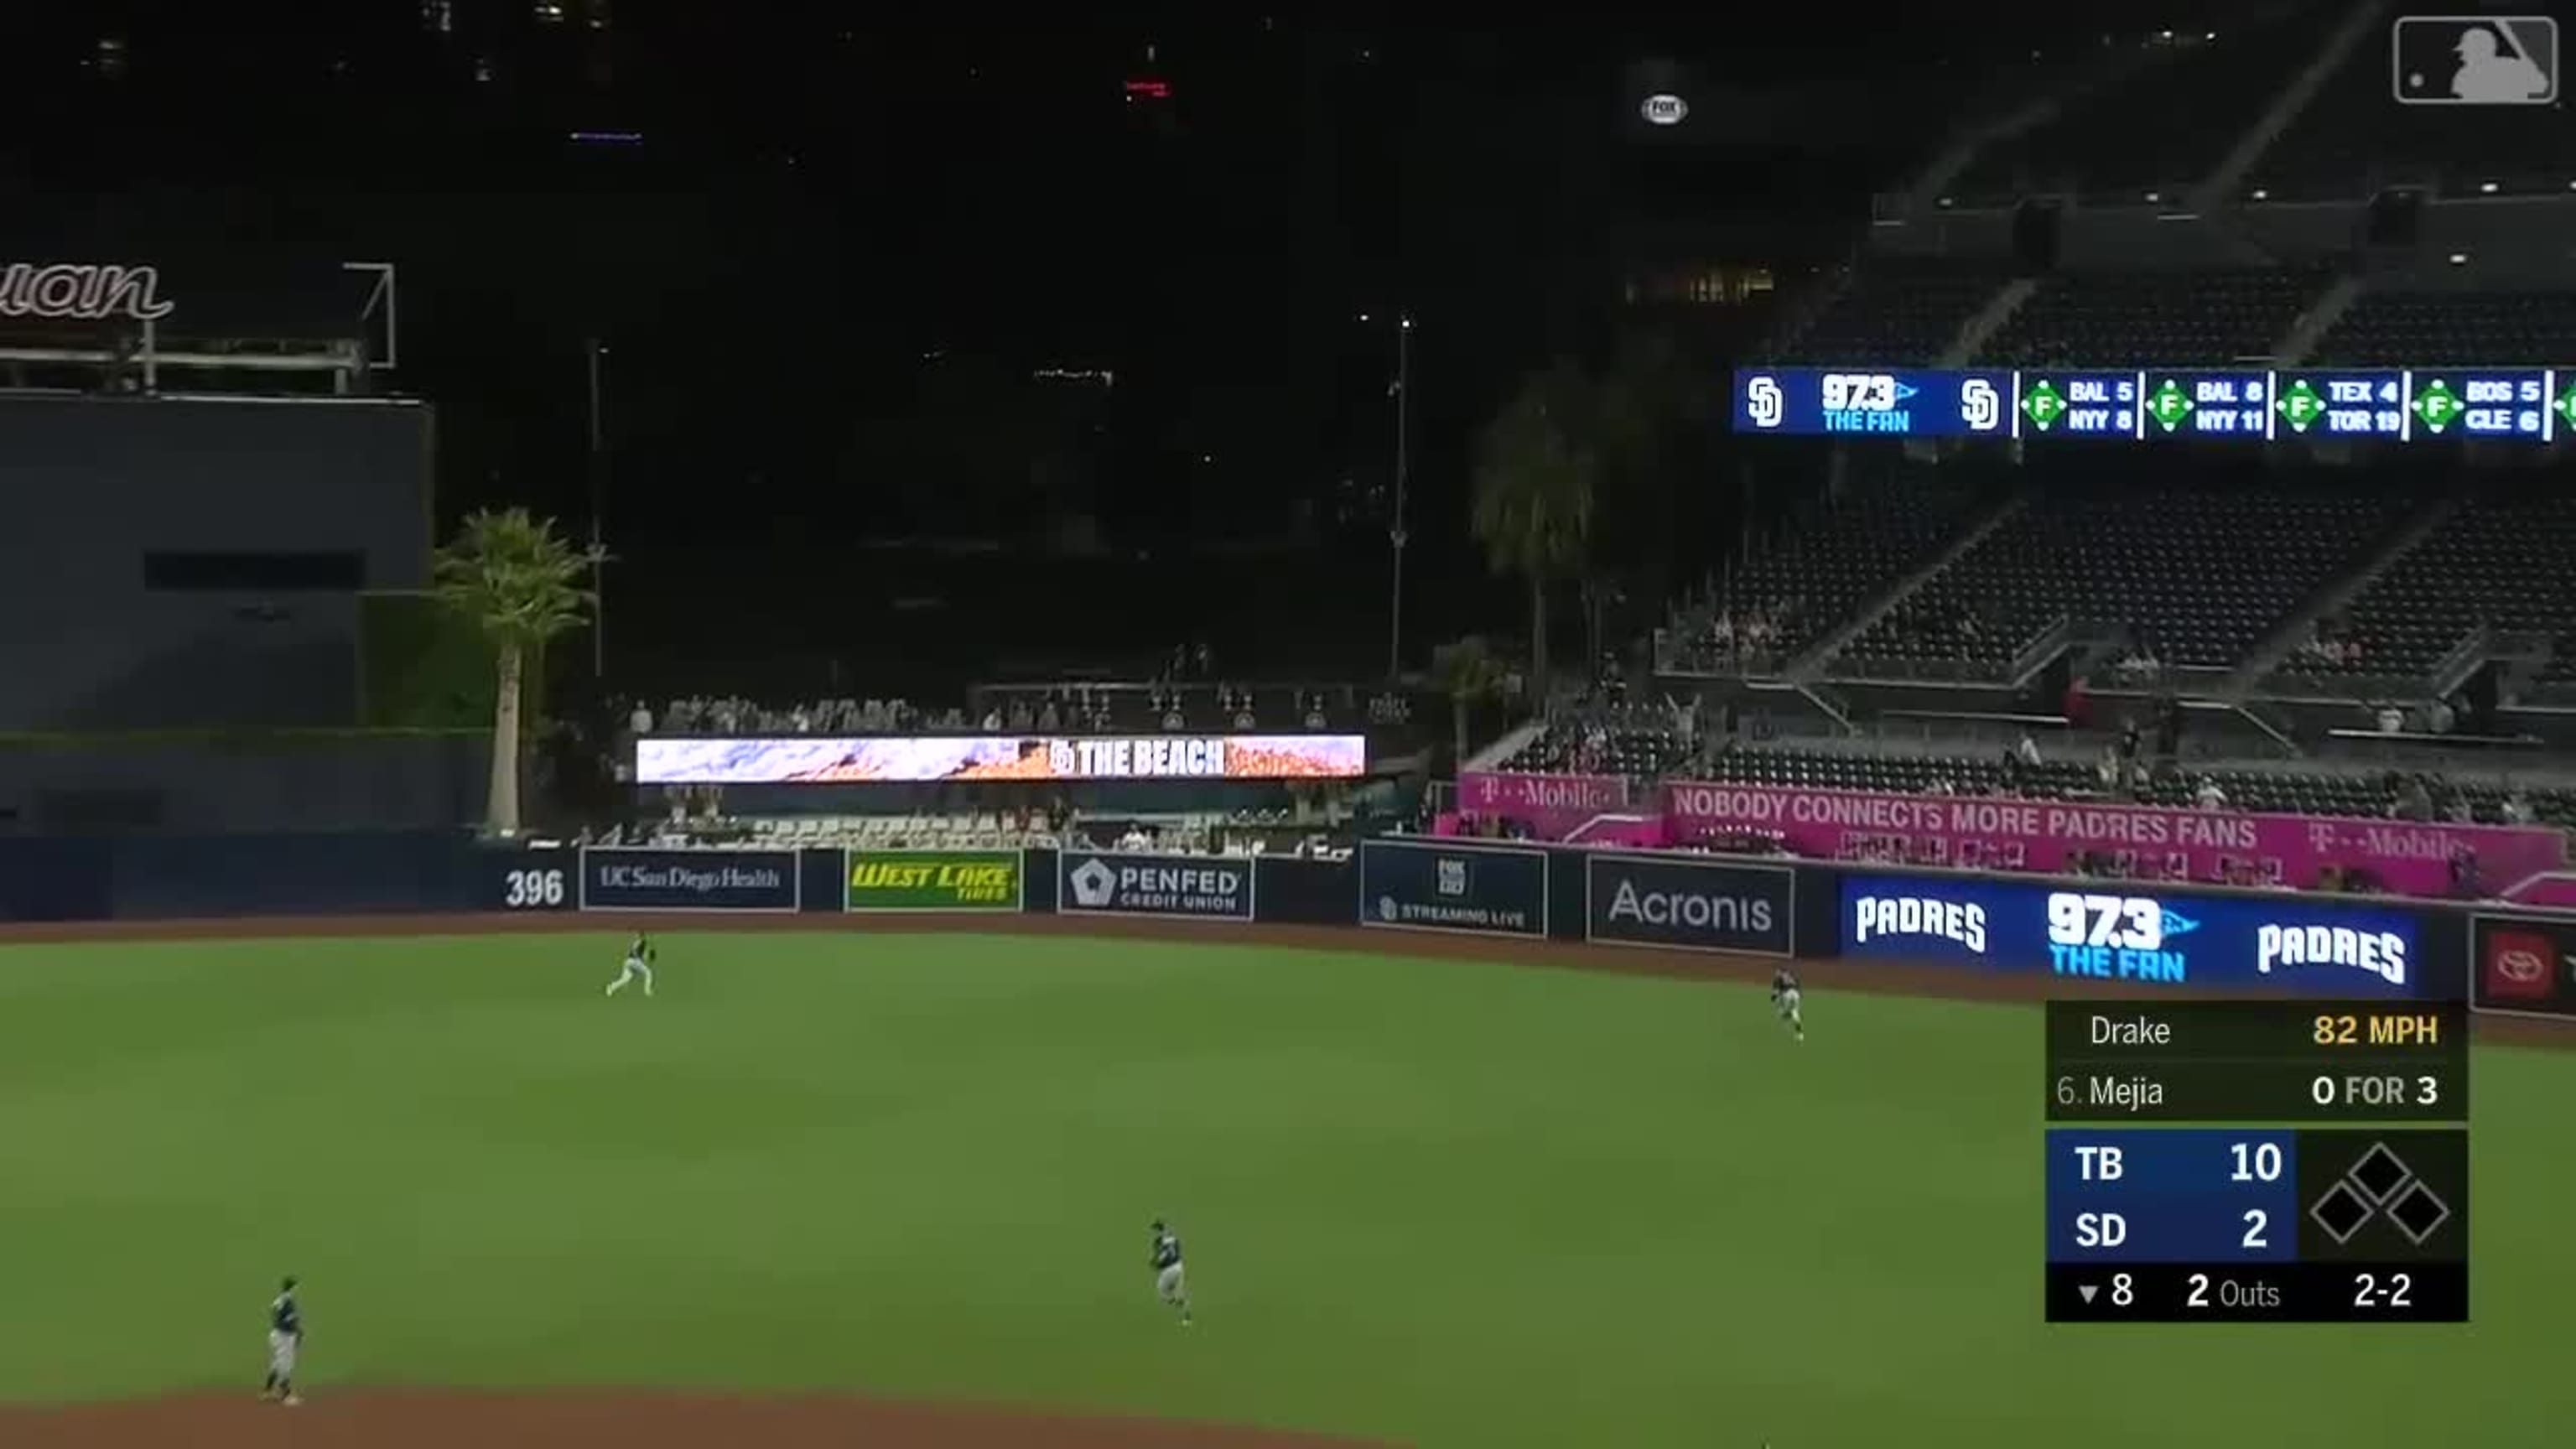 La excelente defensa de Kiermaier